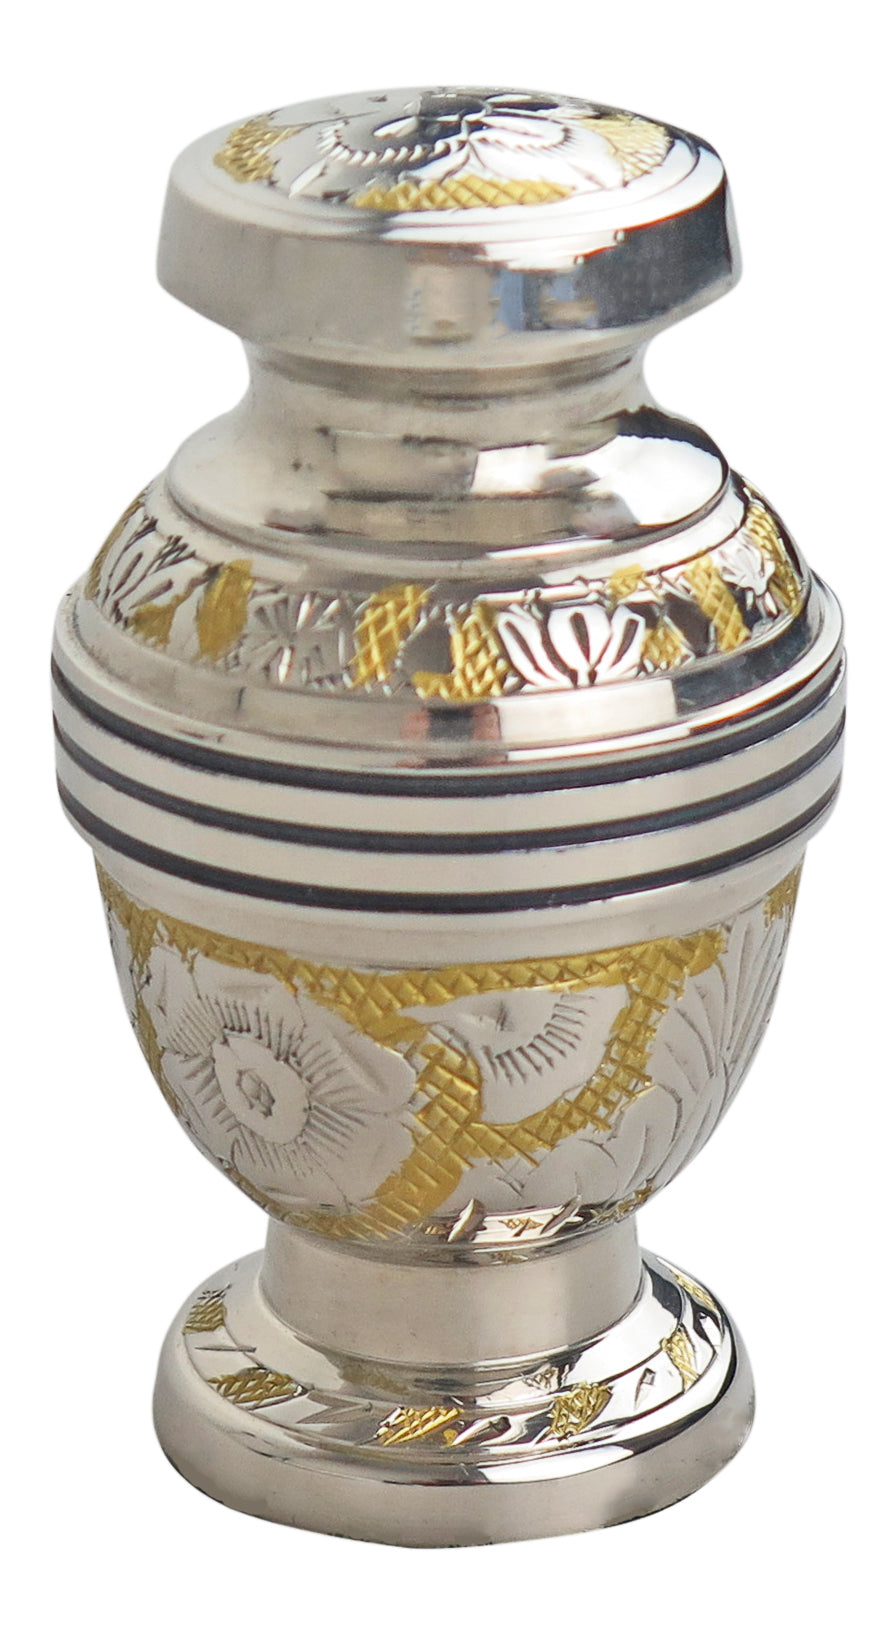 Miniature Silver and Gold Vintage Pattern Keepsake Urn